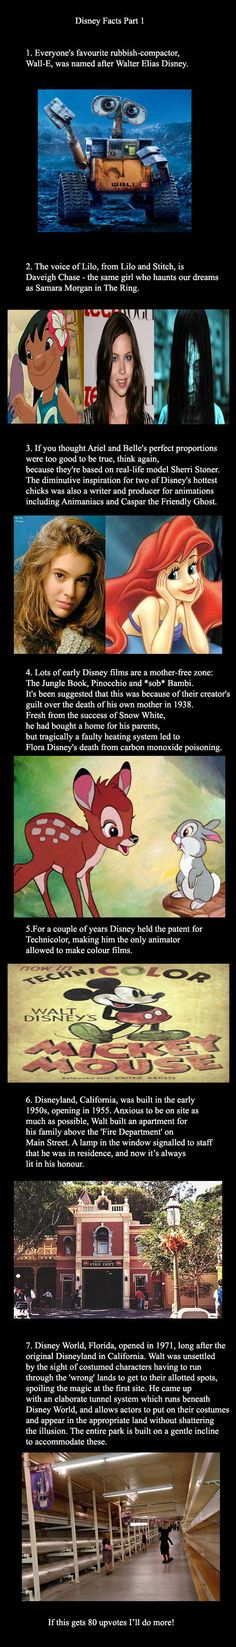 A few interesting Disney facts ----- Someone I knew worked at Disney and told me about the tunnels. Neat.